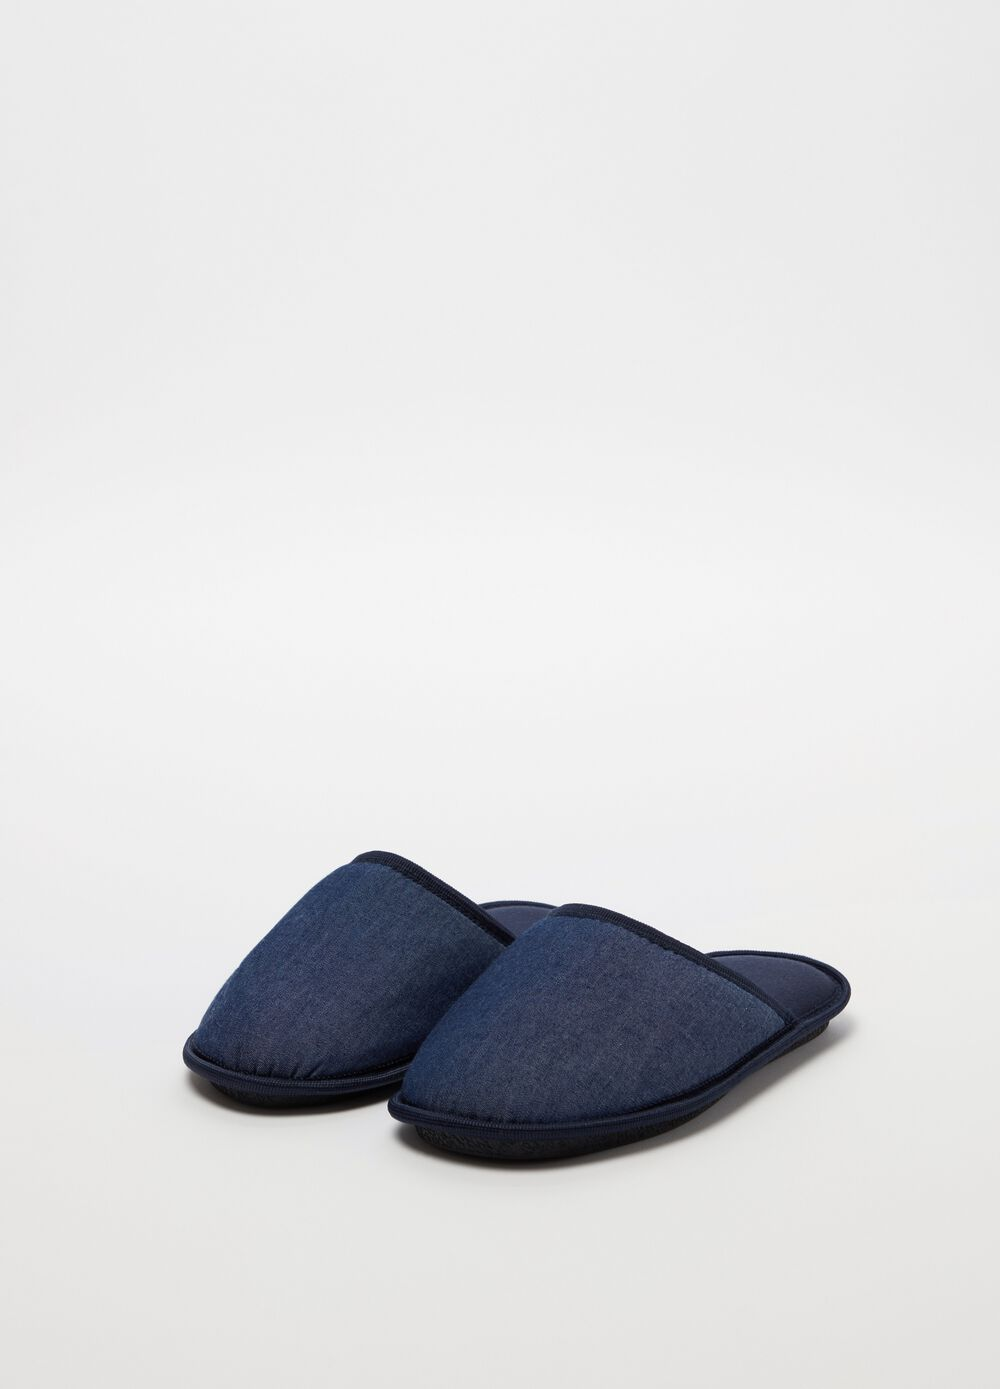 Denim-effect slippers